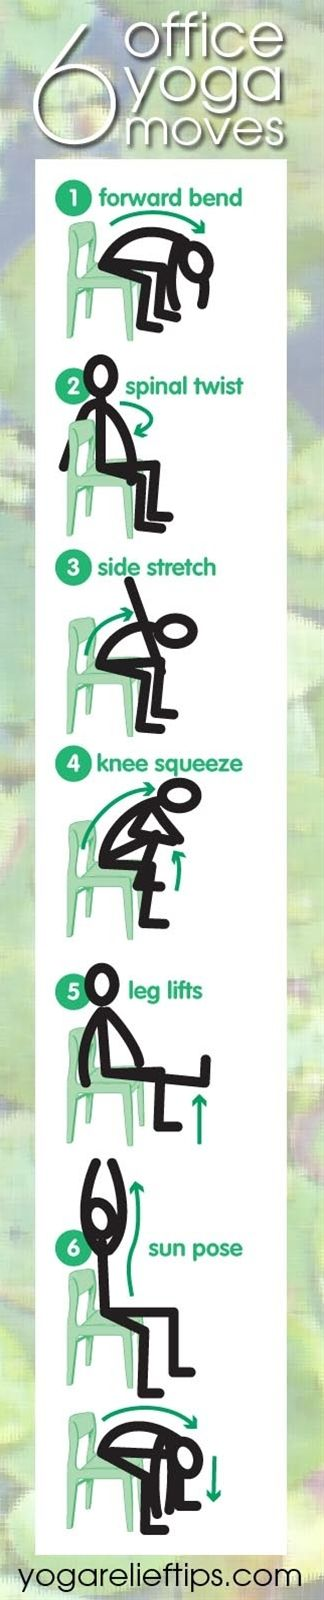 Office Yoga: Easy Chair Yoga Exercises [video] | Yoga Relief Tips For Wellness